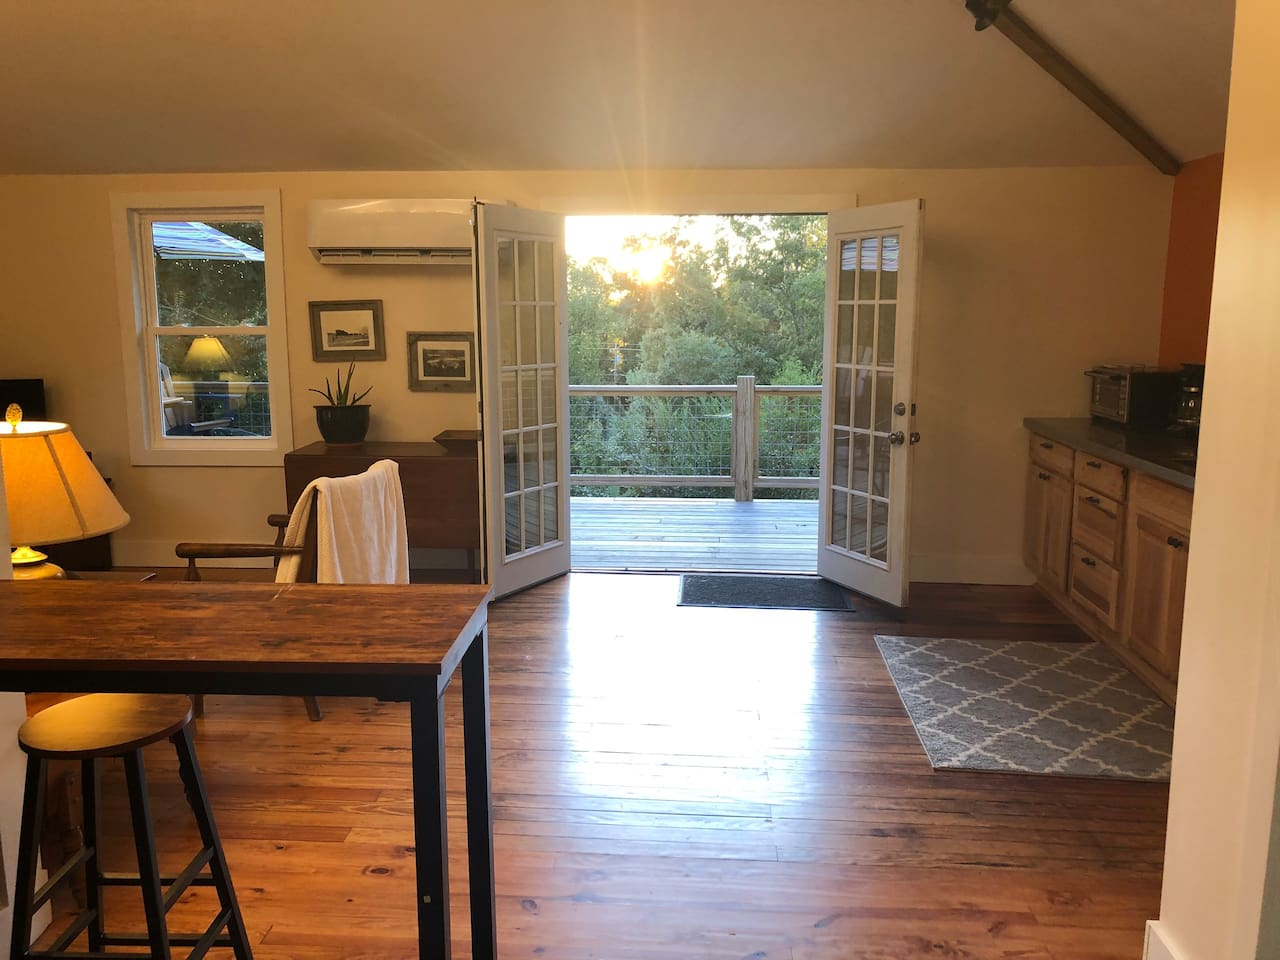 Double french doors can be opened when the weather is nice